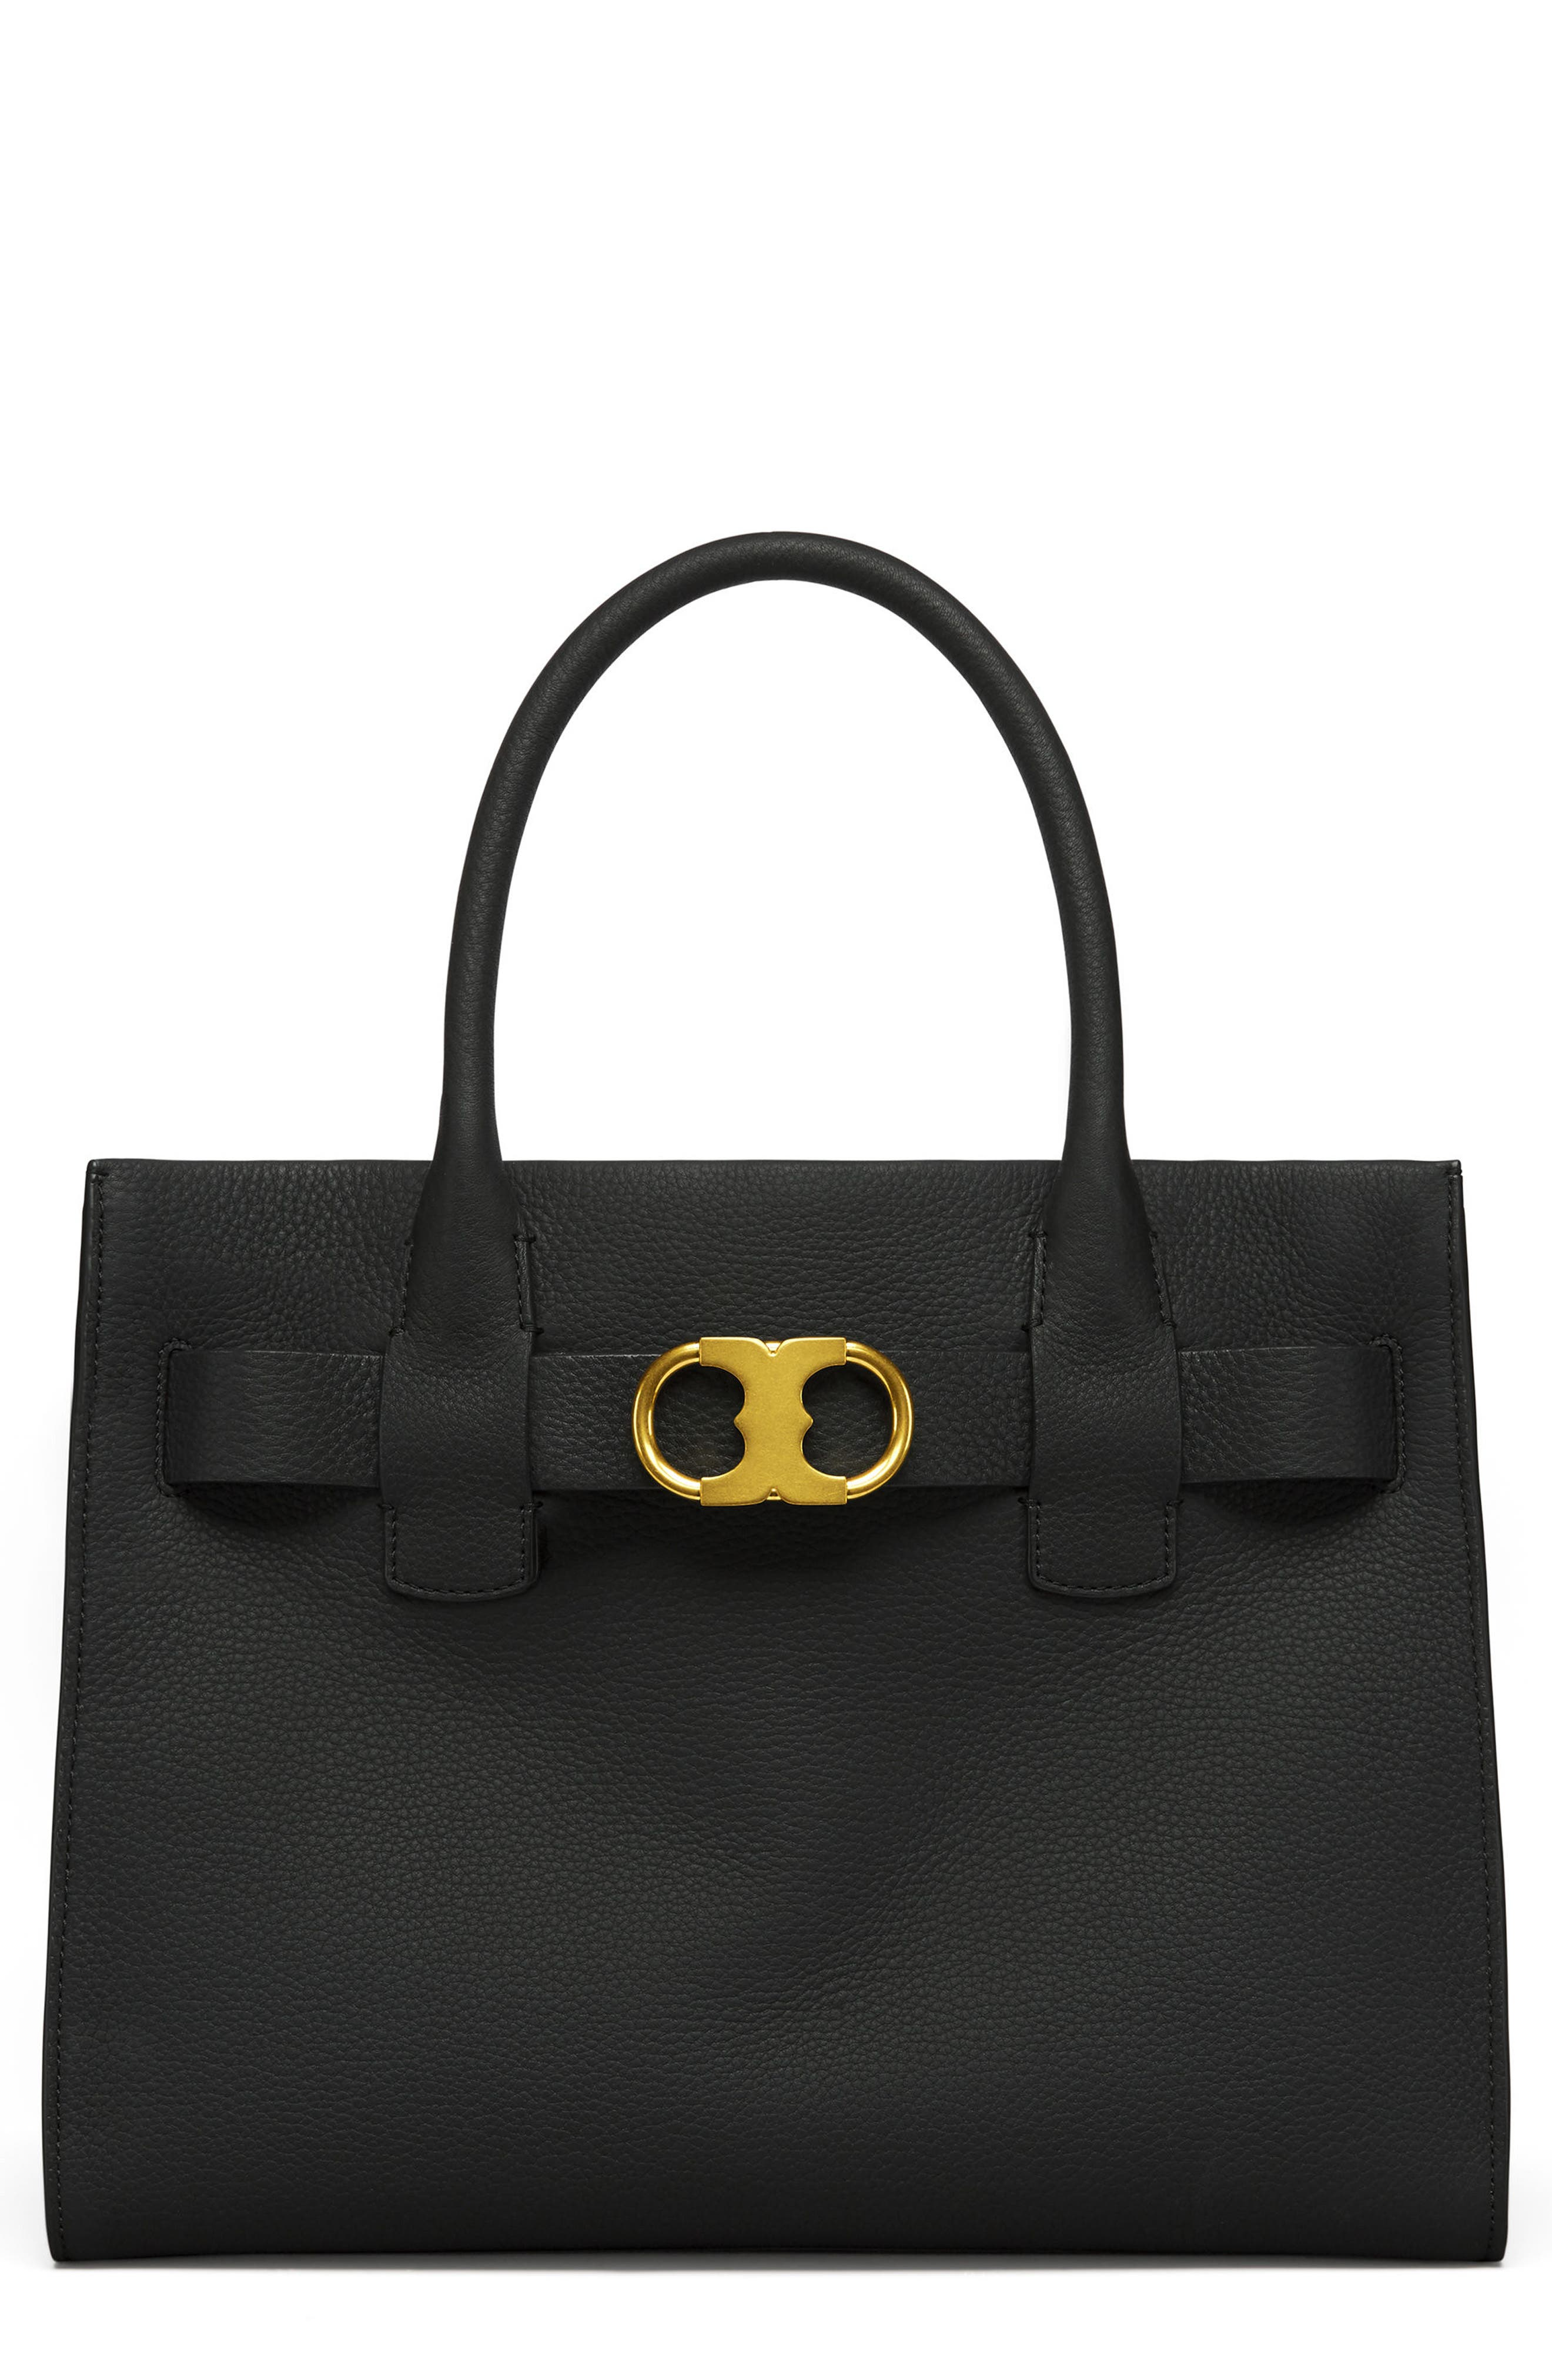 TORY BURCH Gemini Link Leather Tote, Main, color, 001